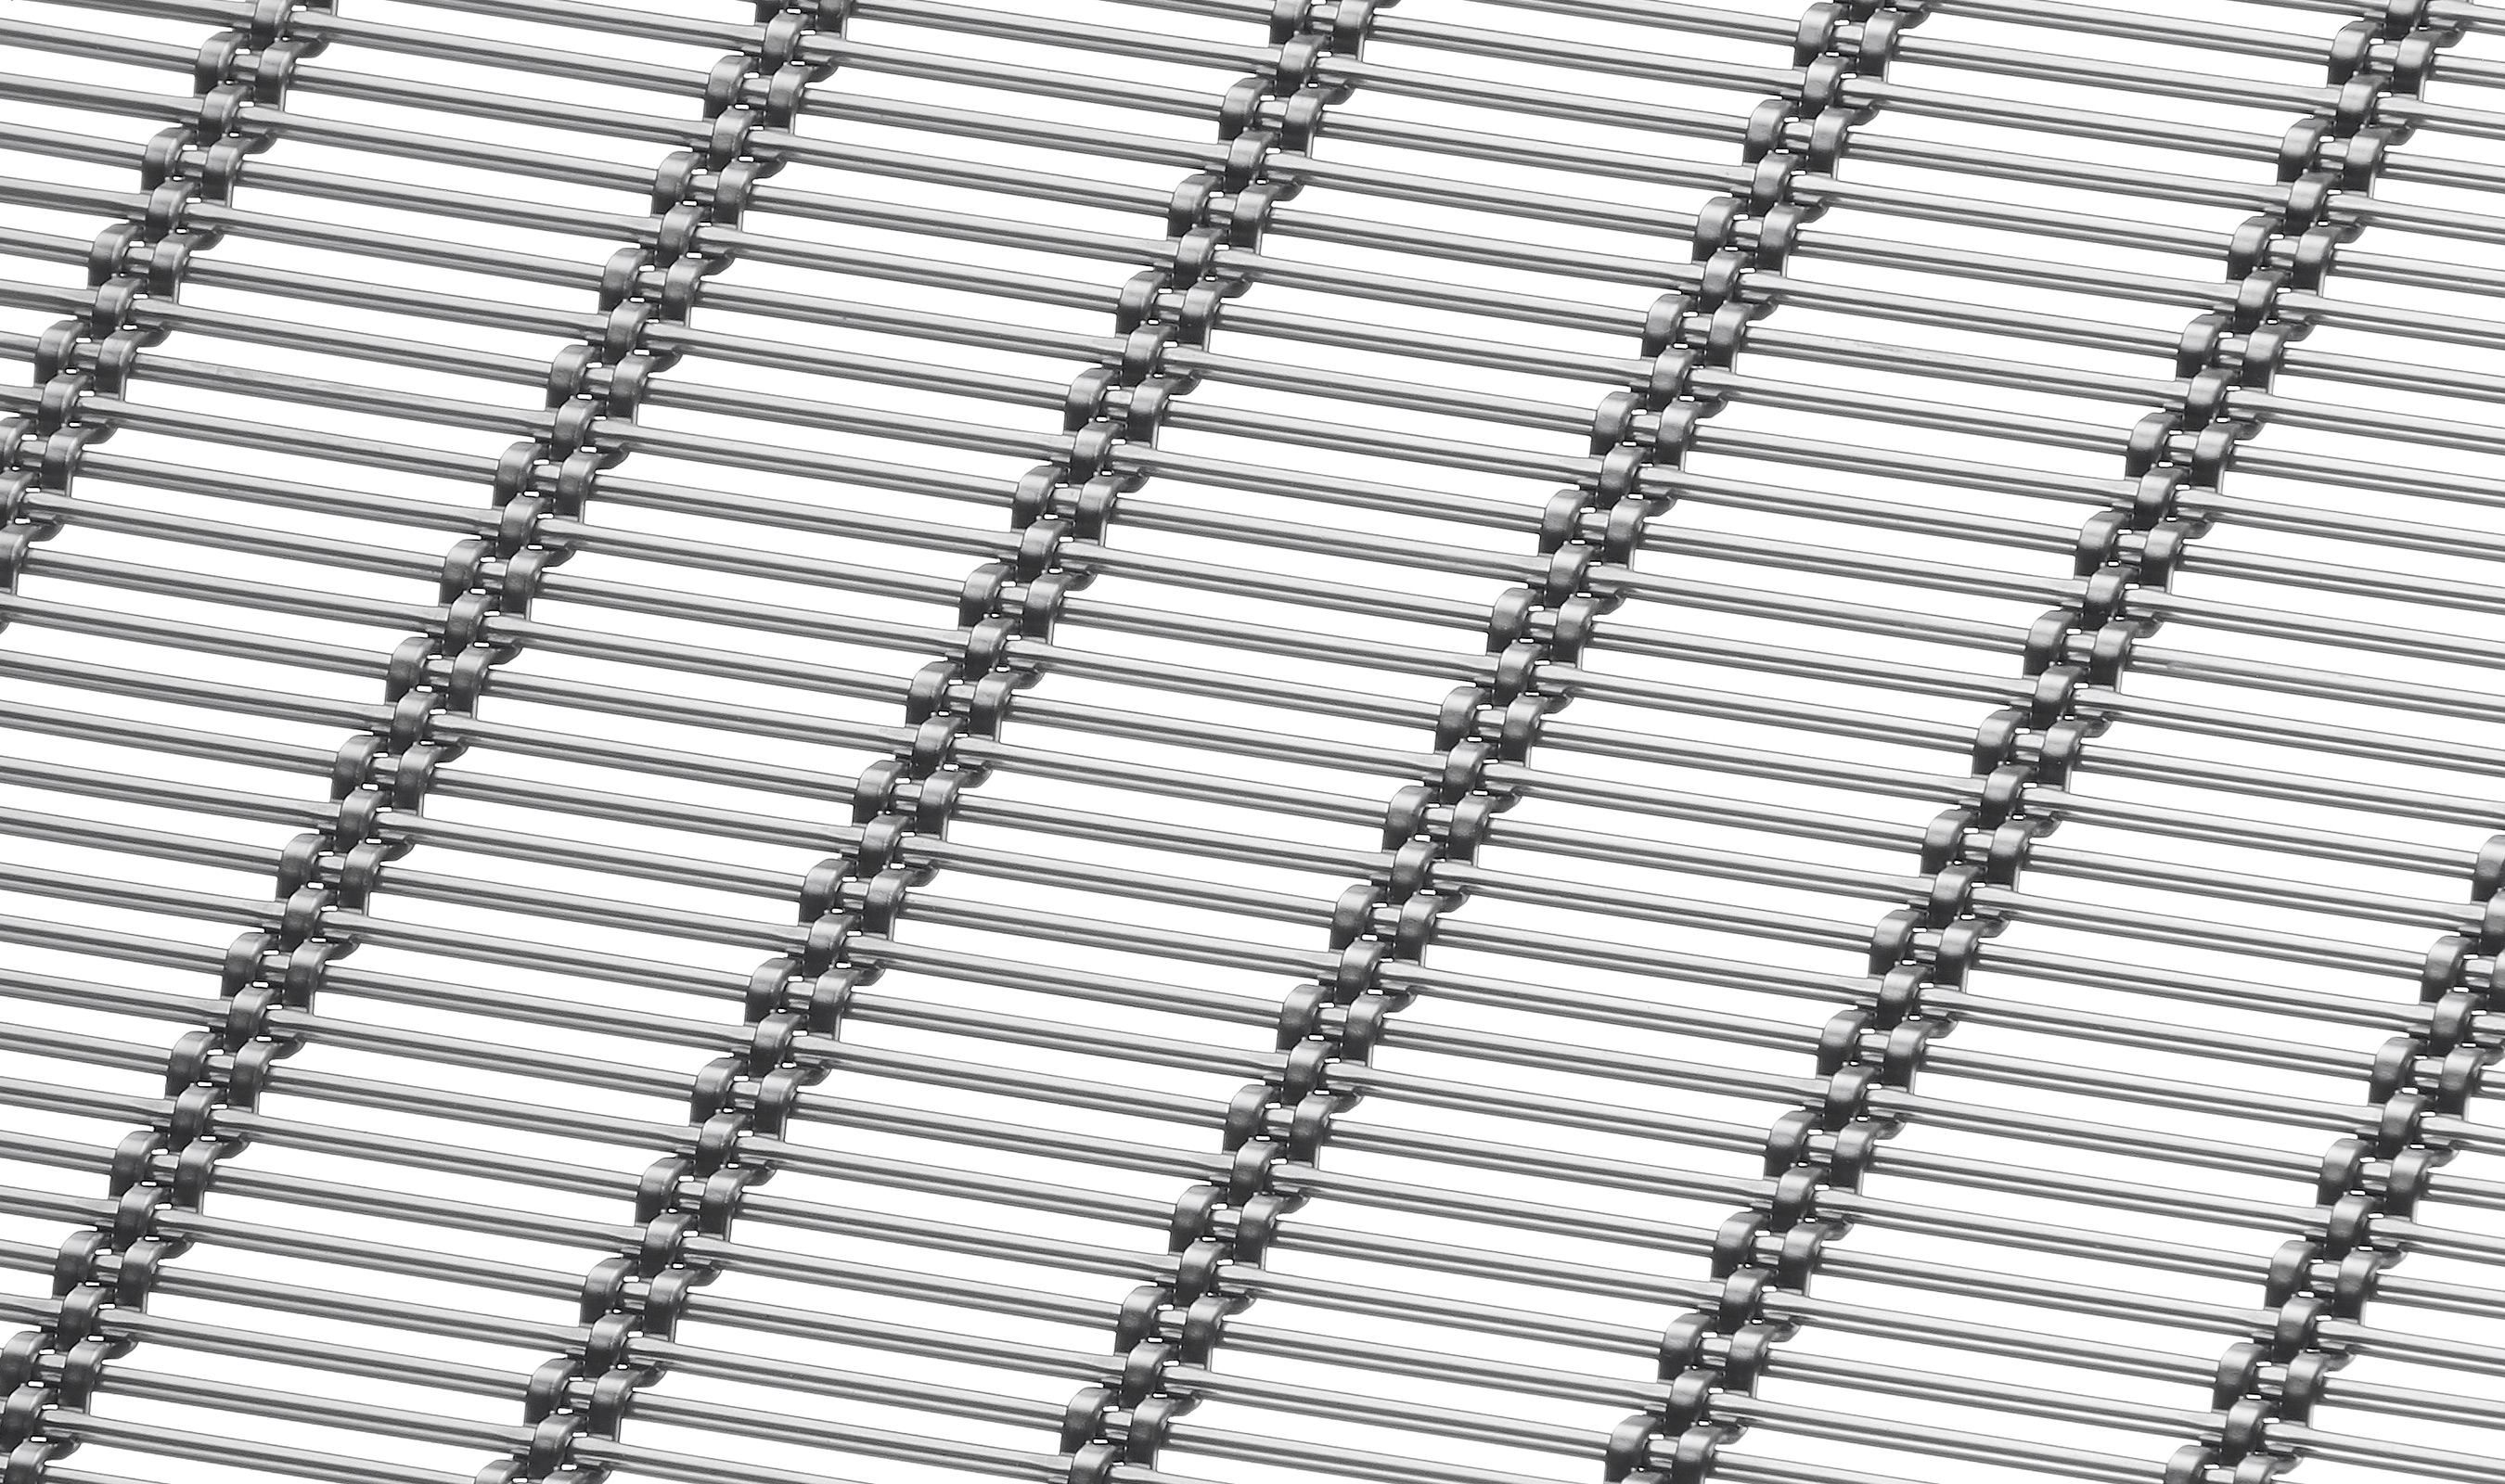 M13Z-382 architectural wire mesh pattern in stainless steel